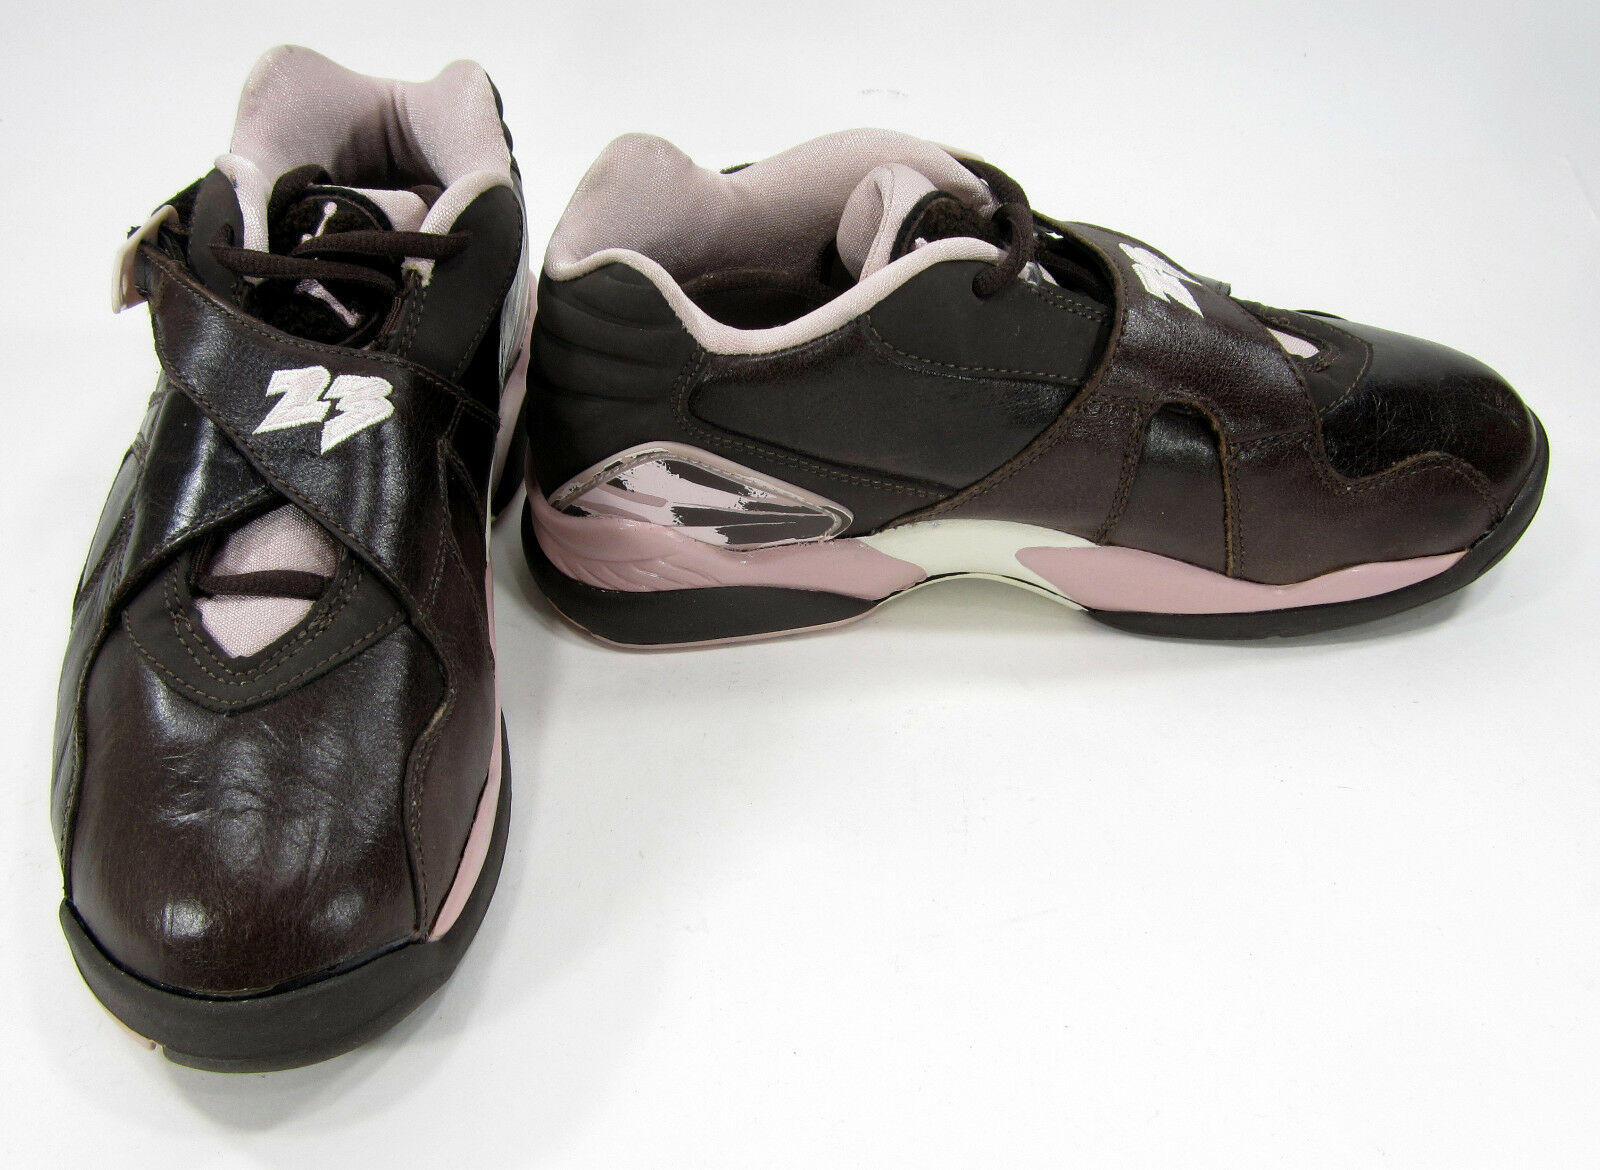 Nike Shoes Air Jordan Retro 8 Low Cinder Brown/Pink Sneakers Womens 8 The most popular shoes for men and women